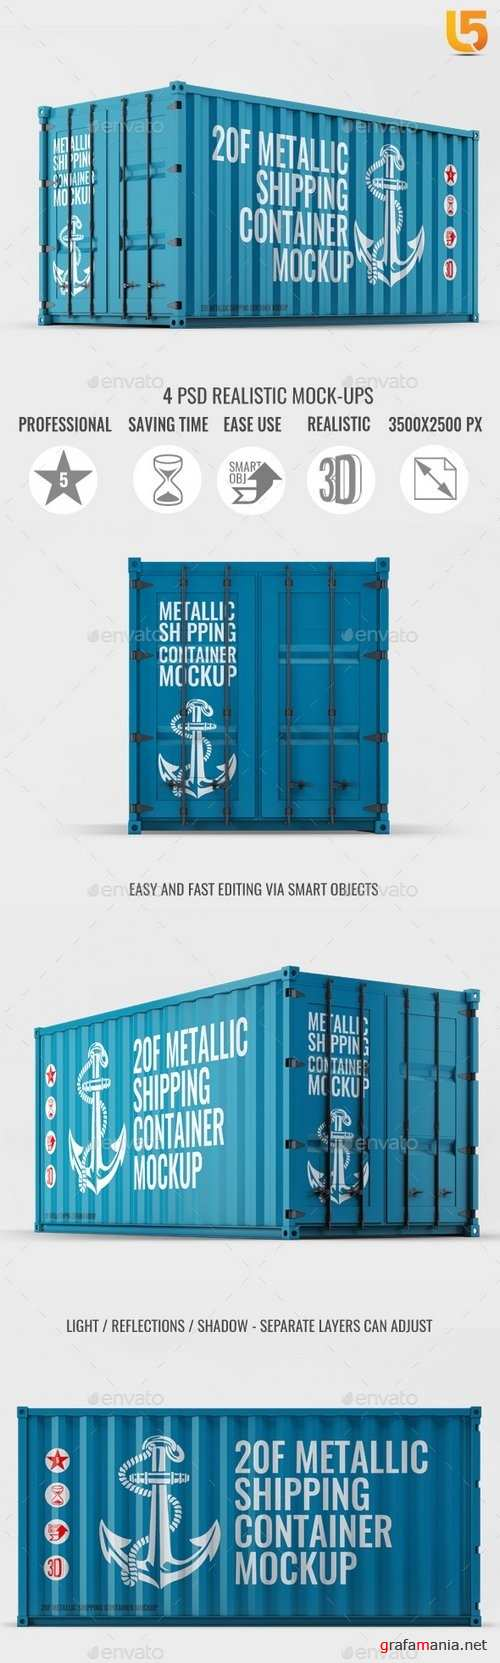 Shipping Container Mock-Up - 21074388